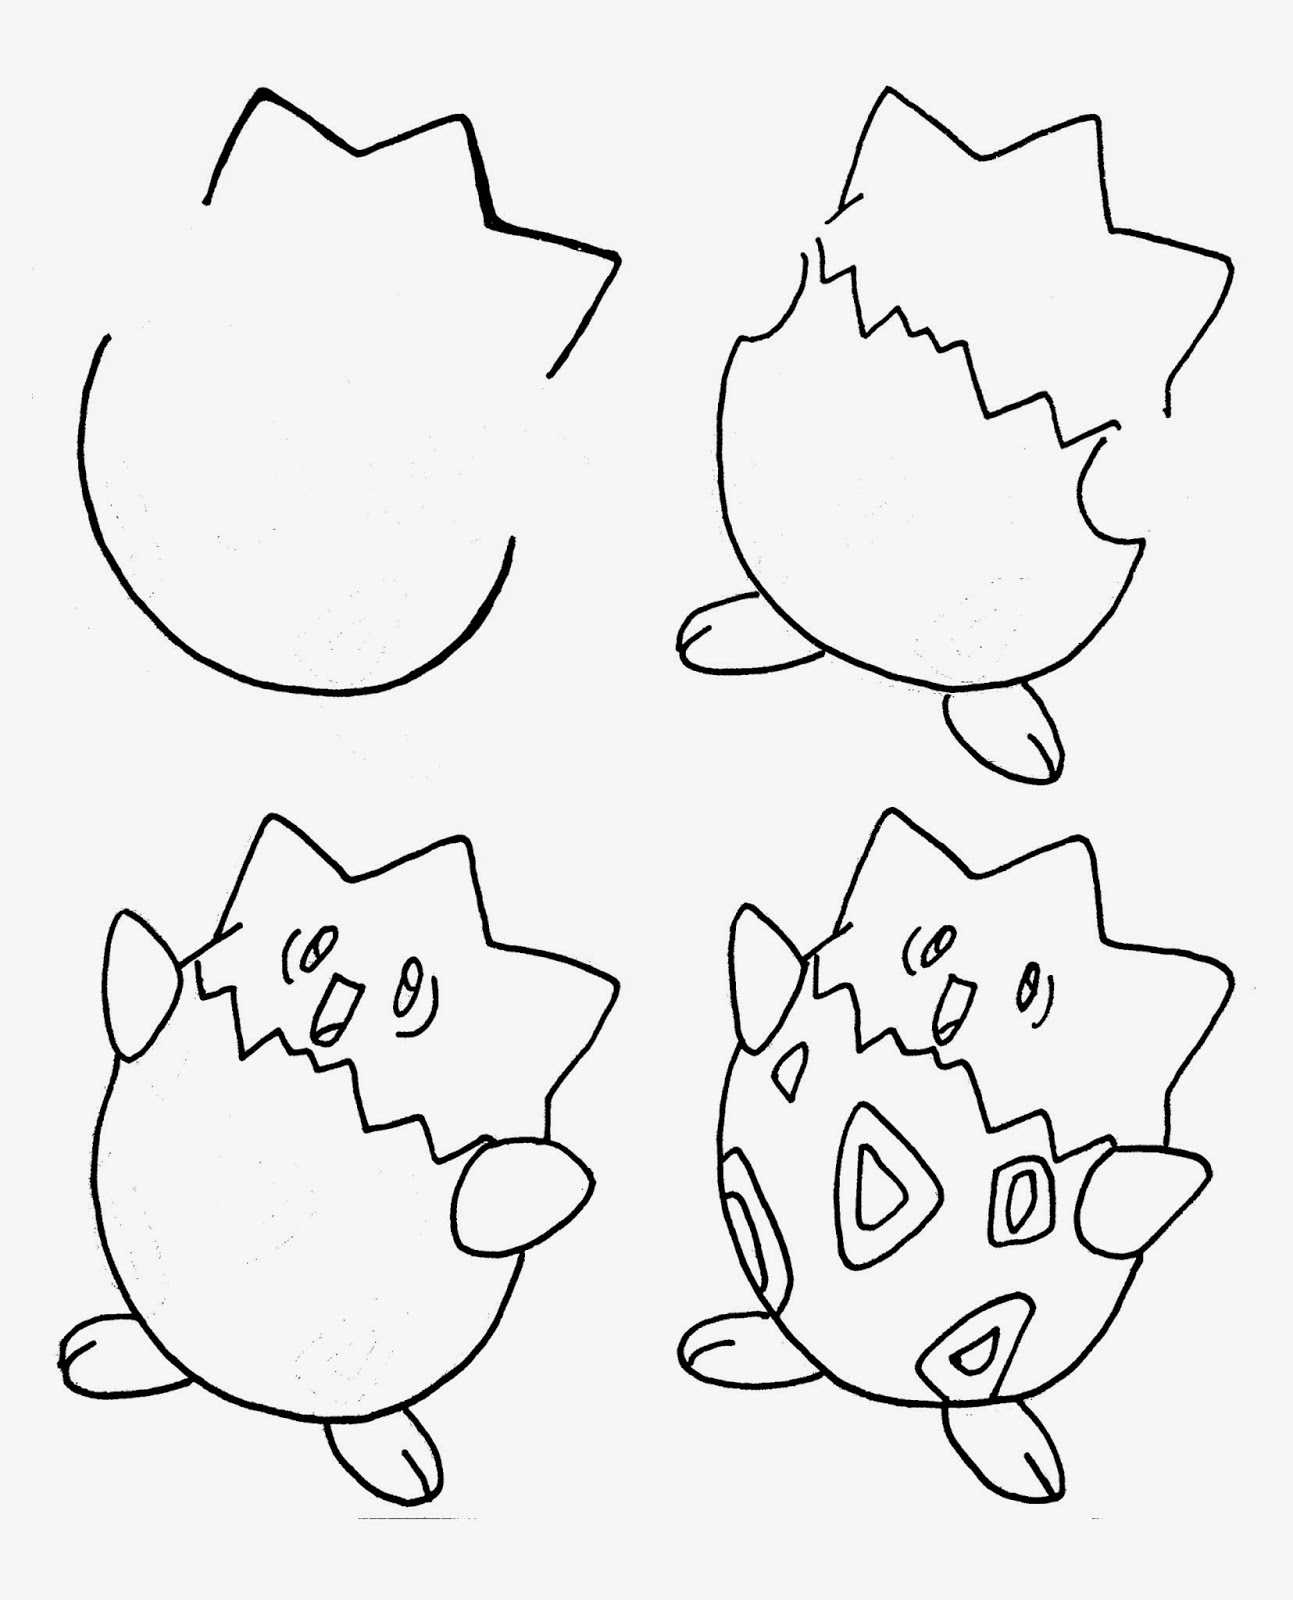 Uncategorized Simple Pokemon To Draw new pokemon drawing guides daryl hobson artwork the tail is a simple rounded triangle off to one side of psyduck and lastly webbed feet are two large w shapes positioned suit your design